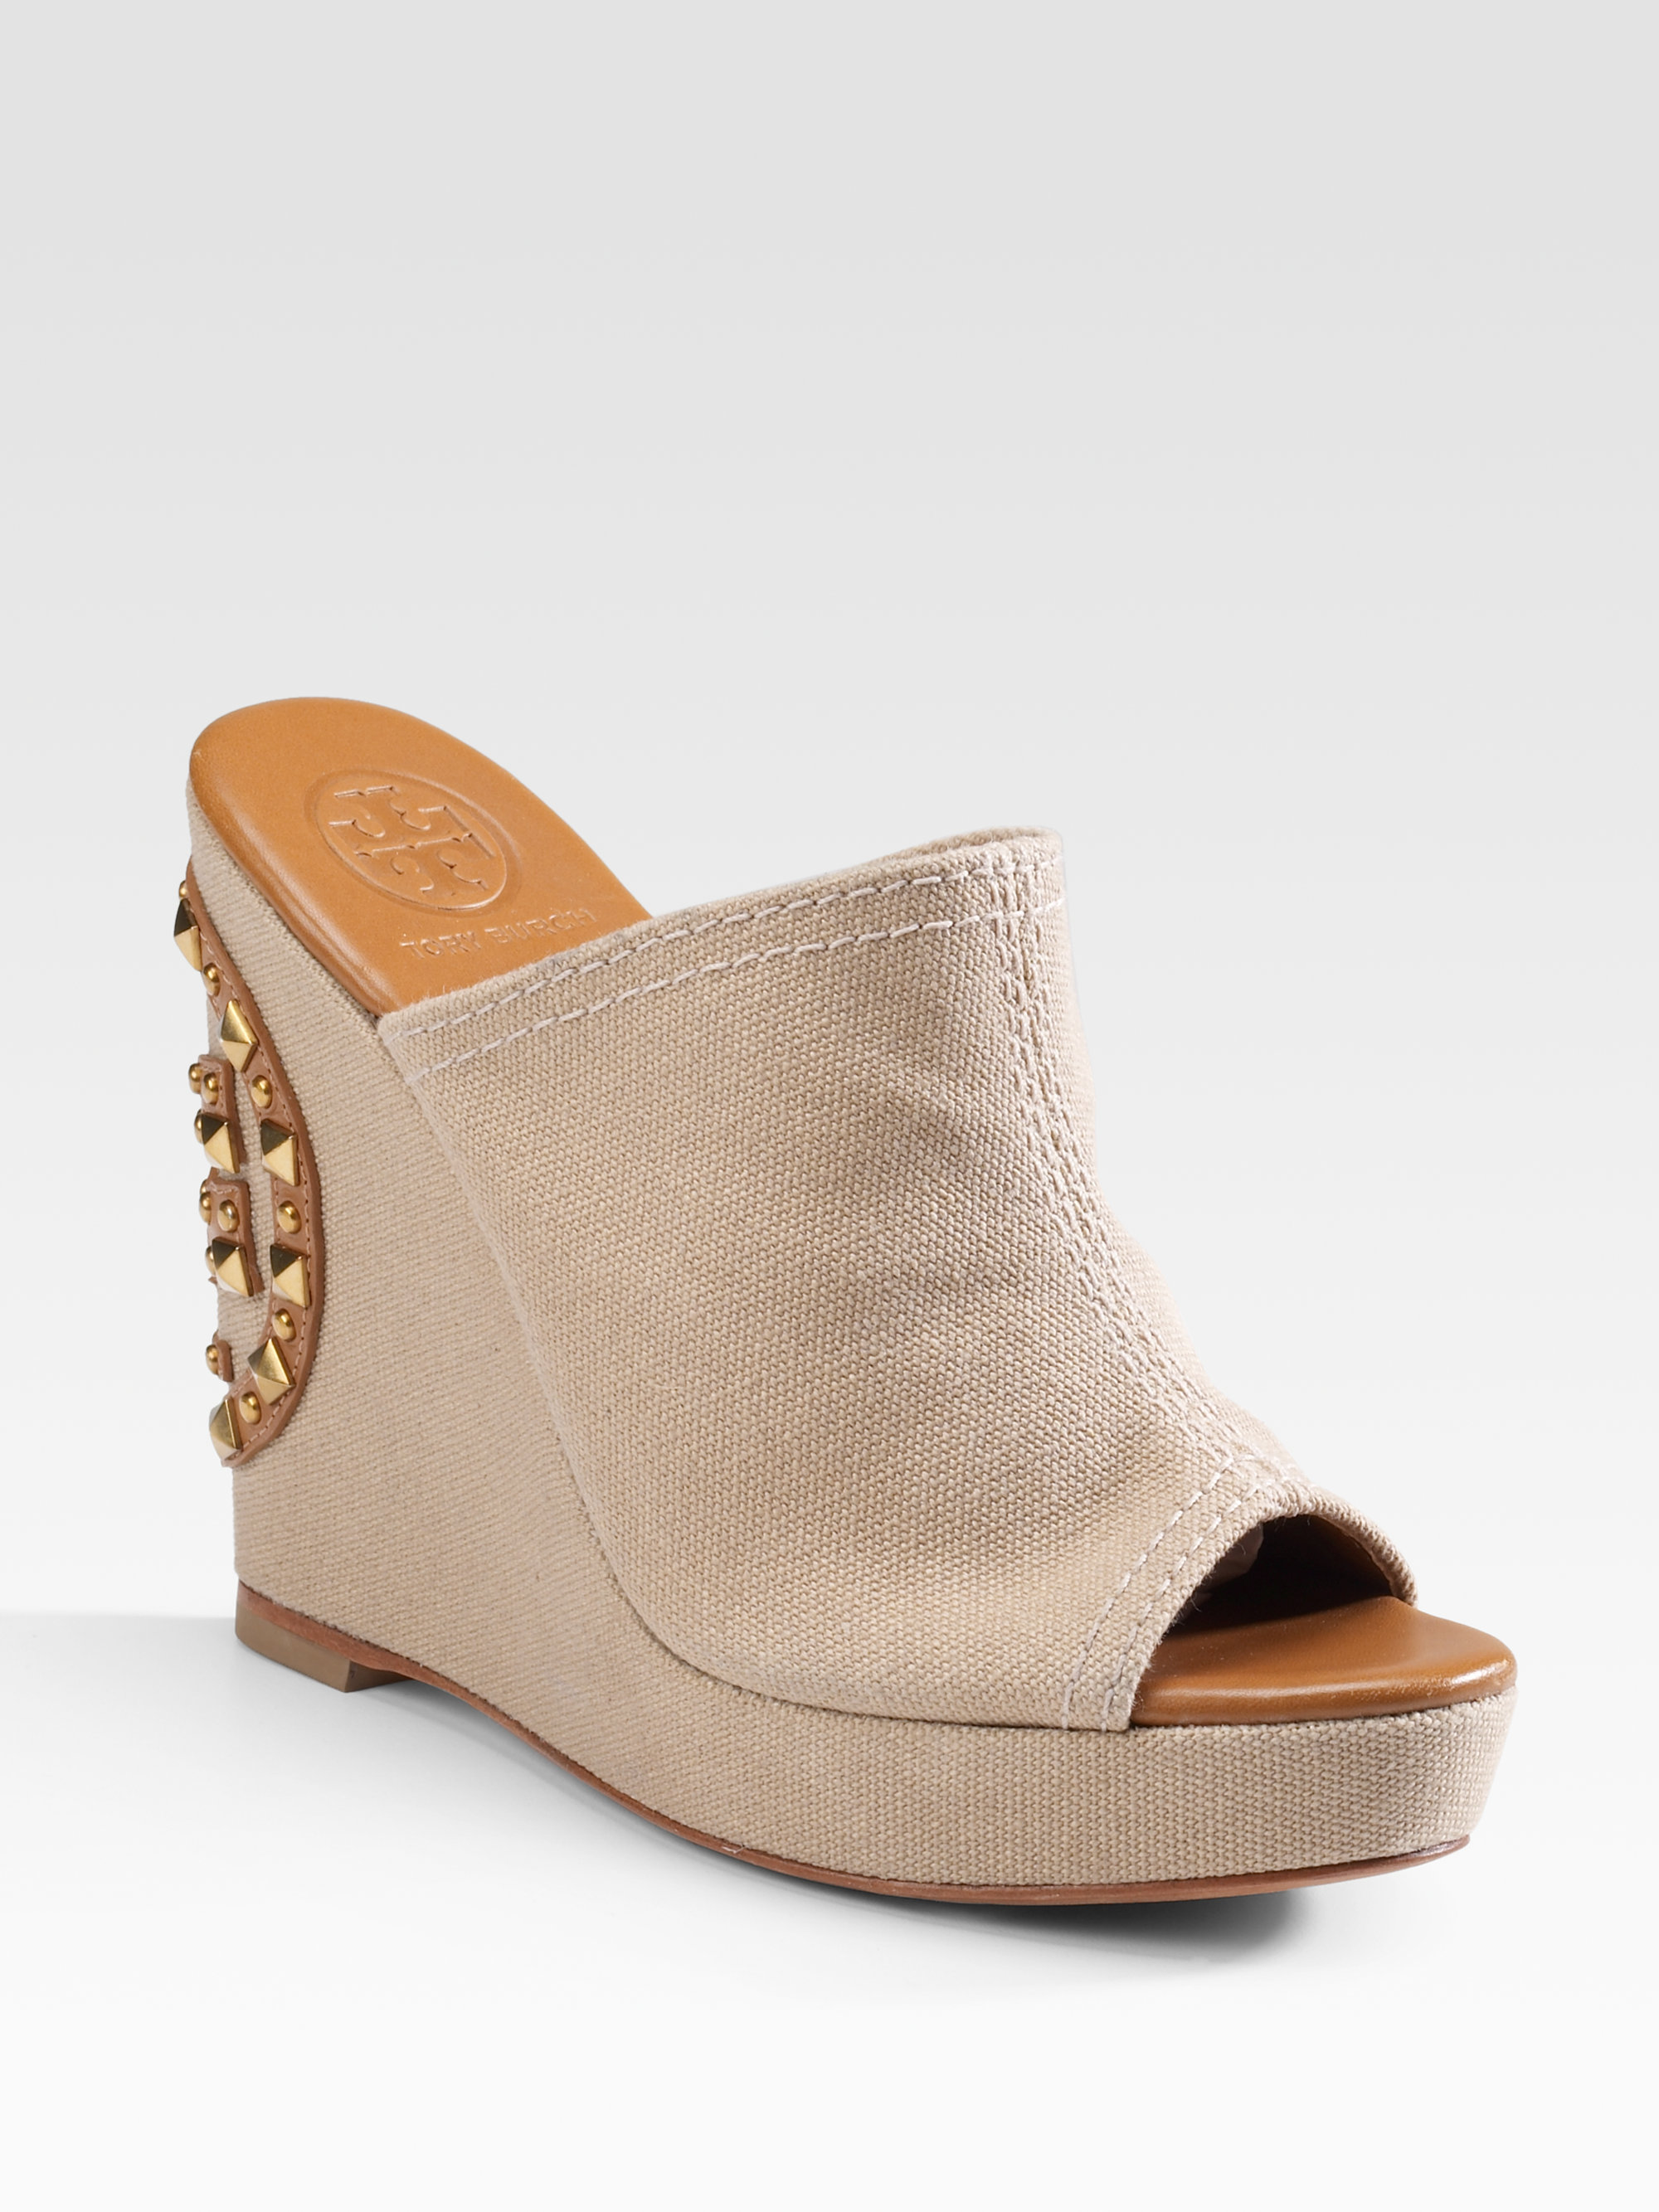 31e09cc19e5 Lyst - Tory Burch Meredith Canvas Wedge Slides in Natural